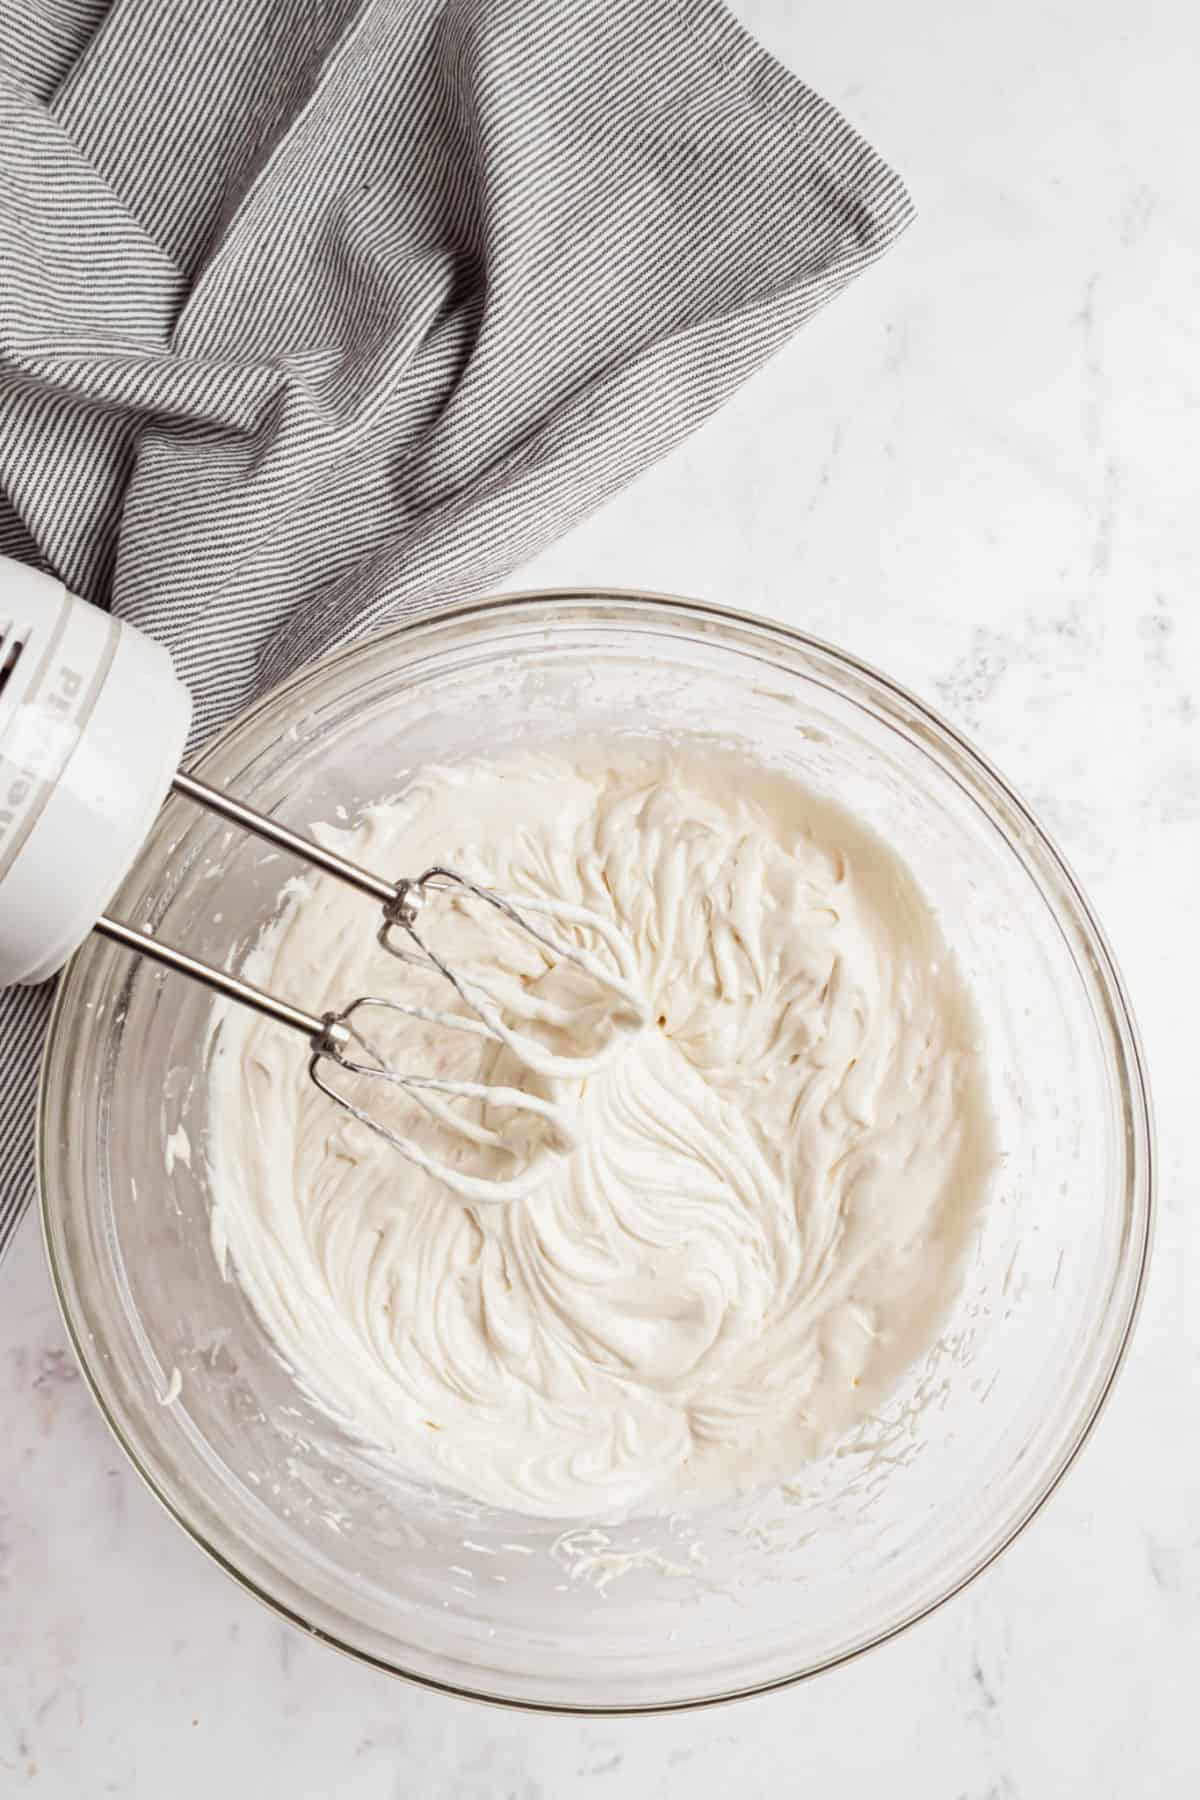 Sour cream frosting in mixing bowl with hand mixer.